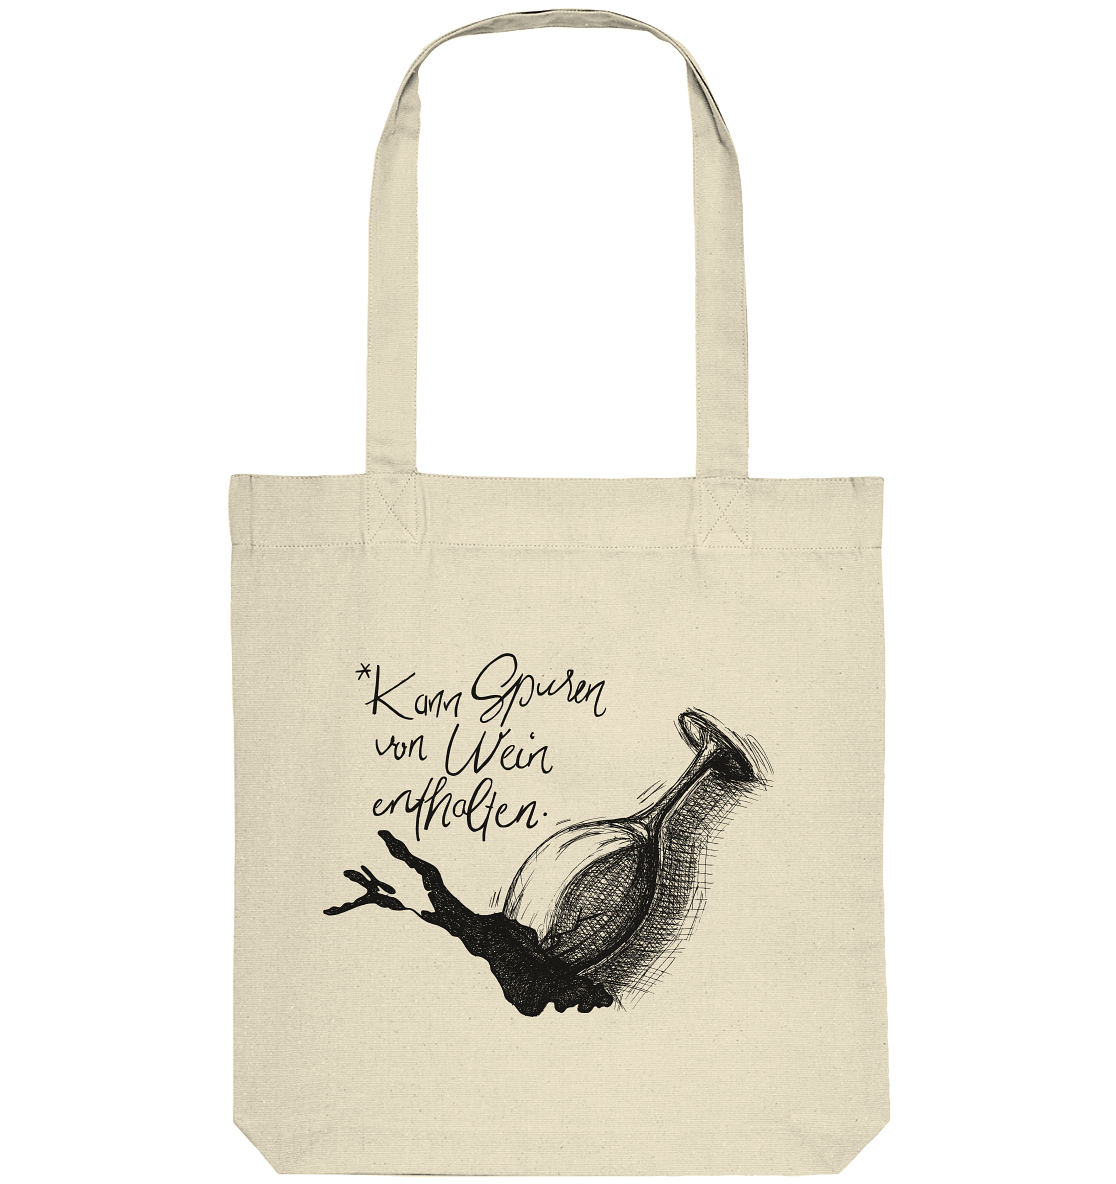 front-organic-tote-bag-f4ead0-1116x.png